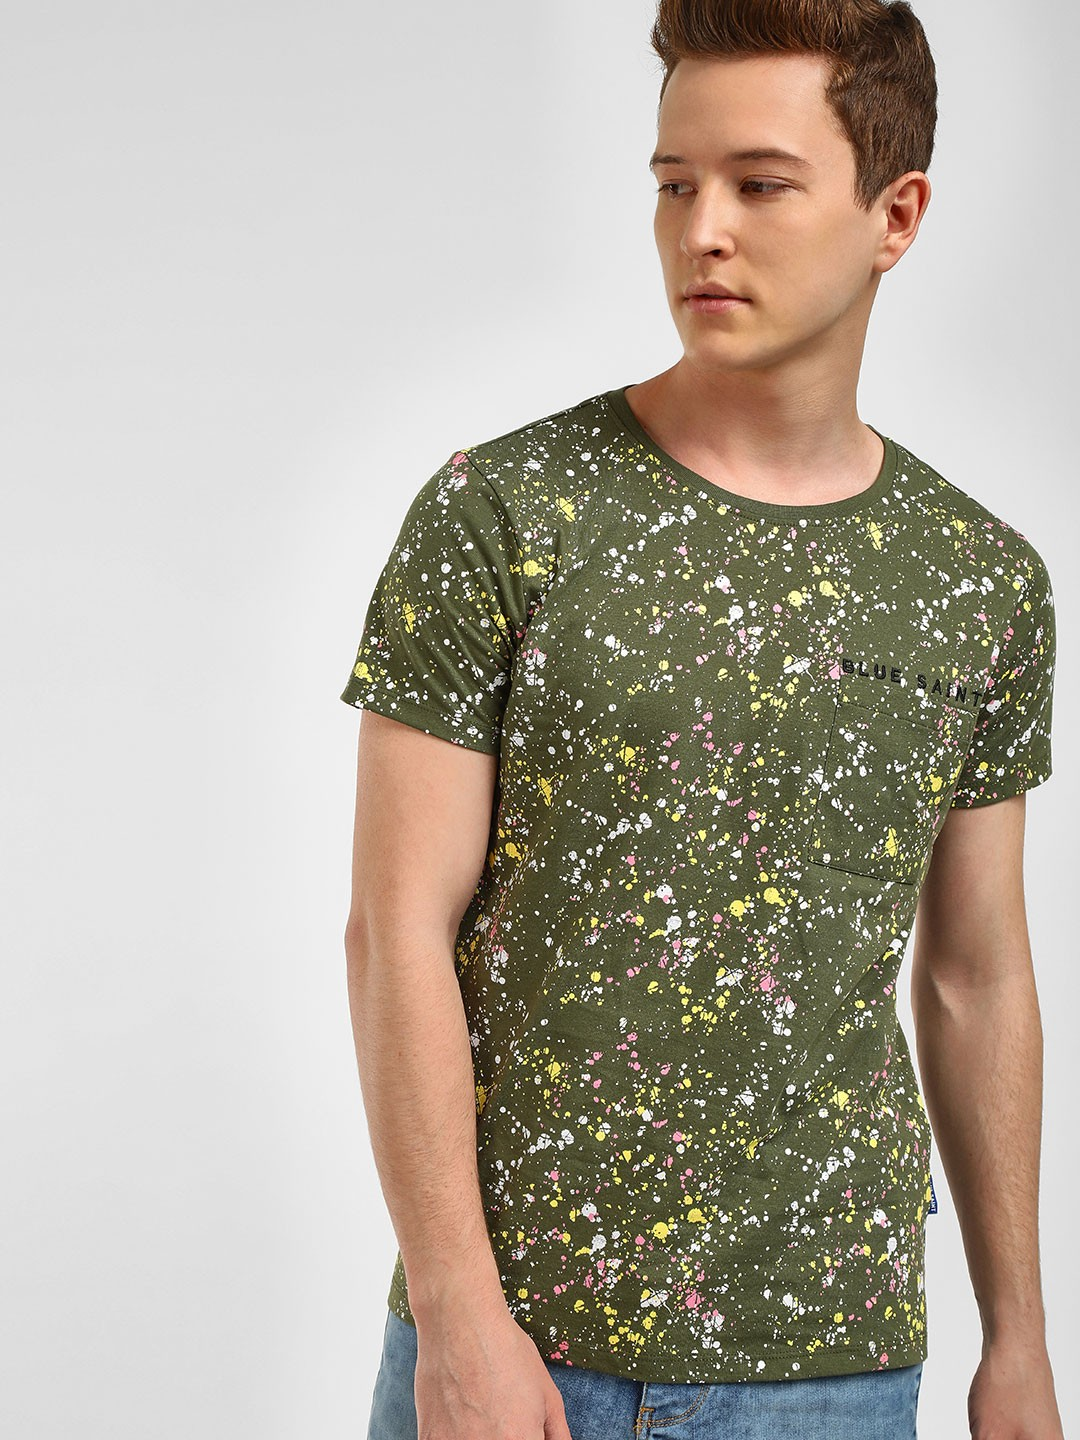 Blue Saint Green Splatter Print Round Neck T-Shirt 1